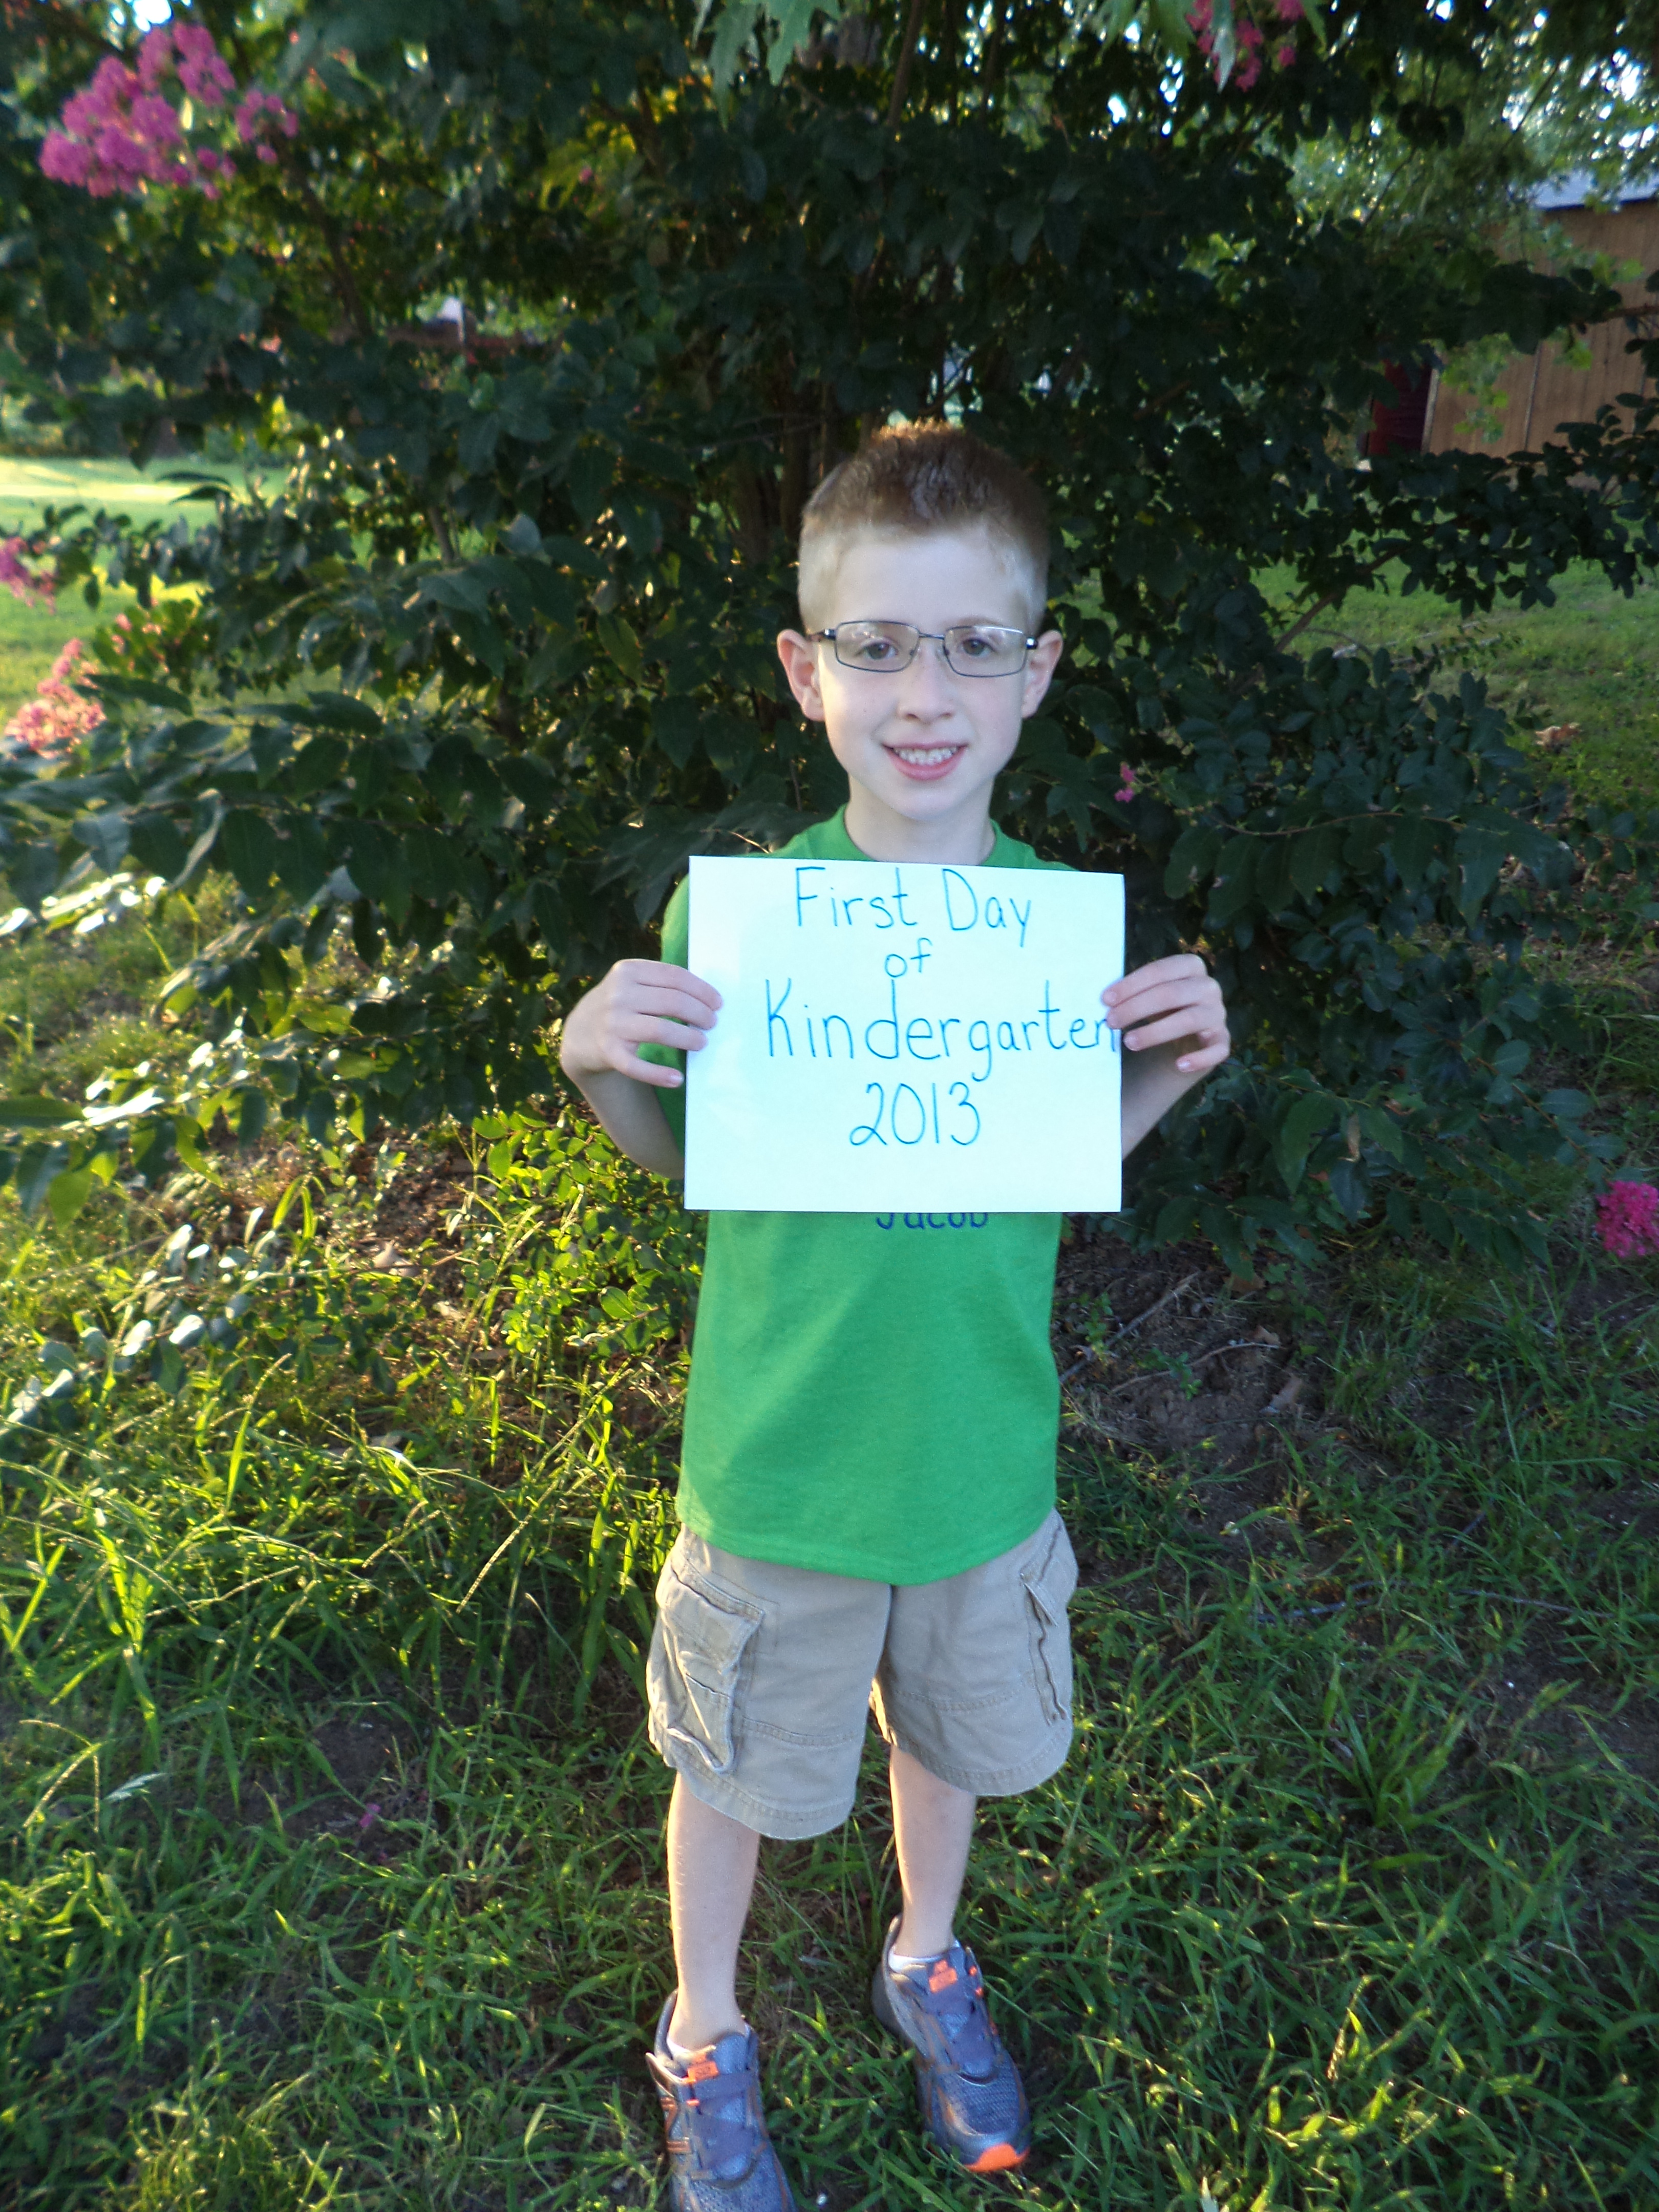 Jacob's first day of Kindergarten!